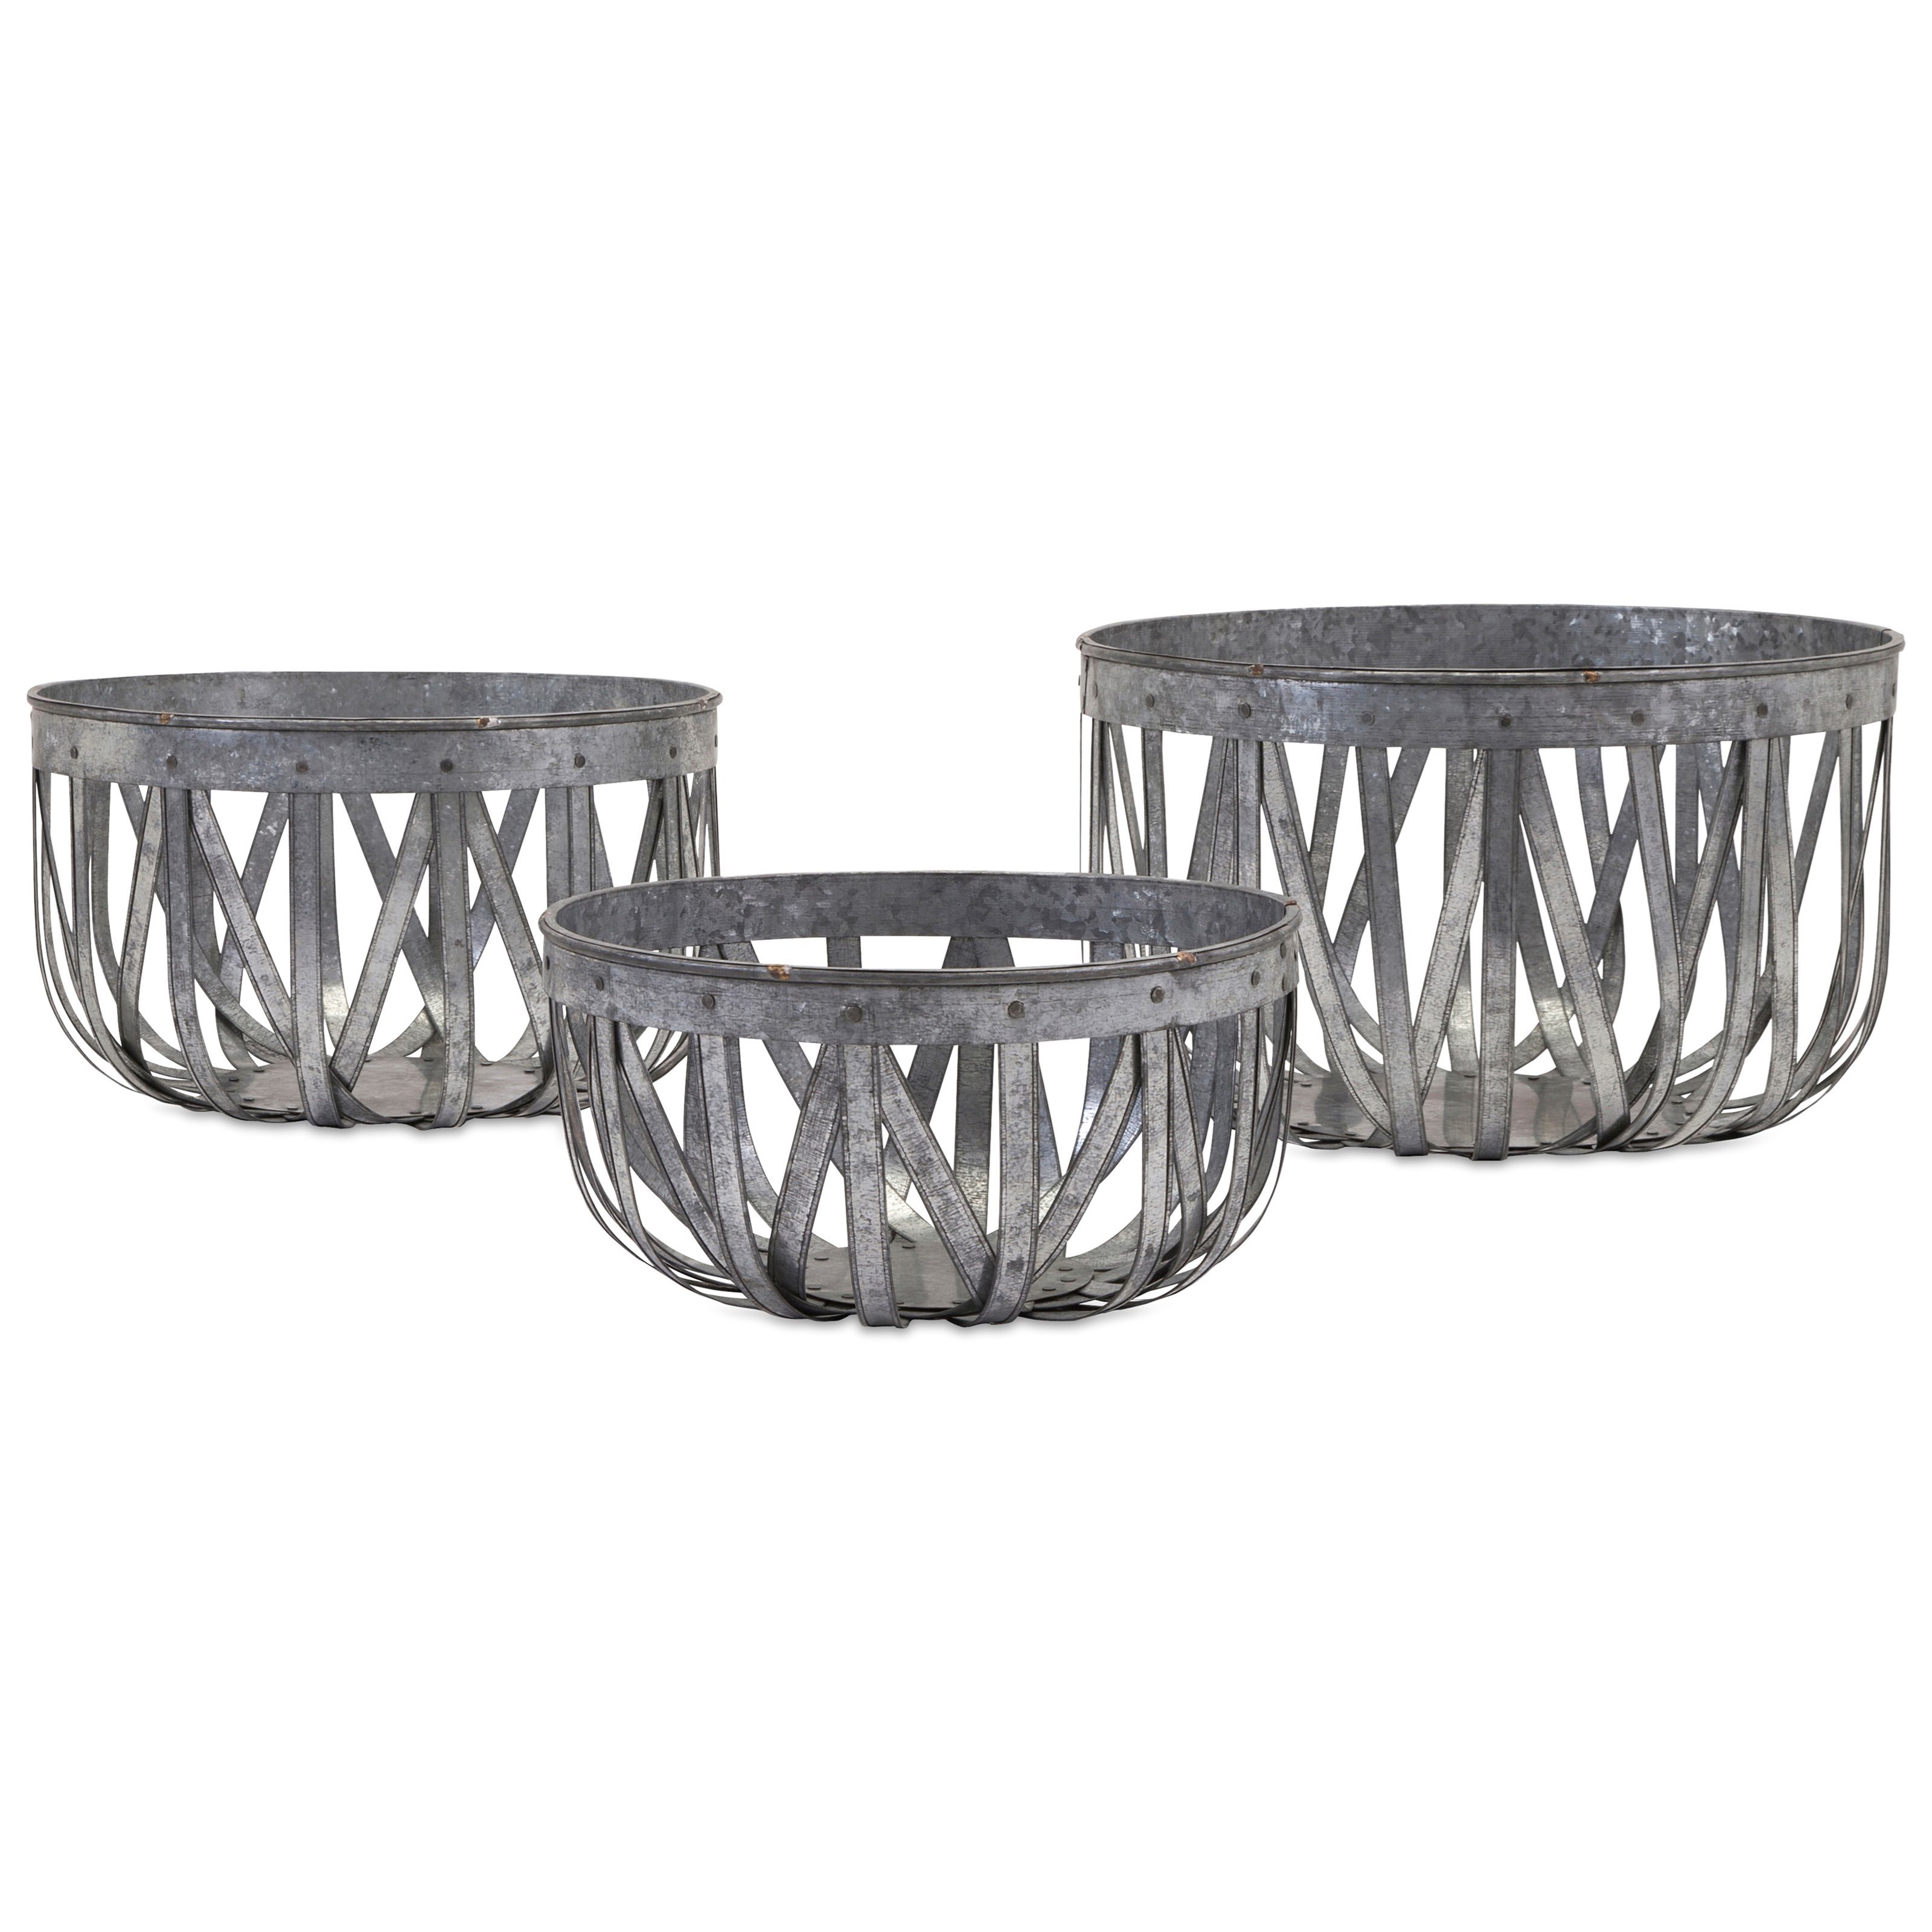 Baskets Arlene Galvanized Baskets - Set of 3 by IMAX Worldwide Home at Alison Craig Home Furnishings